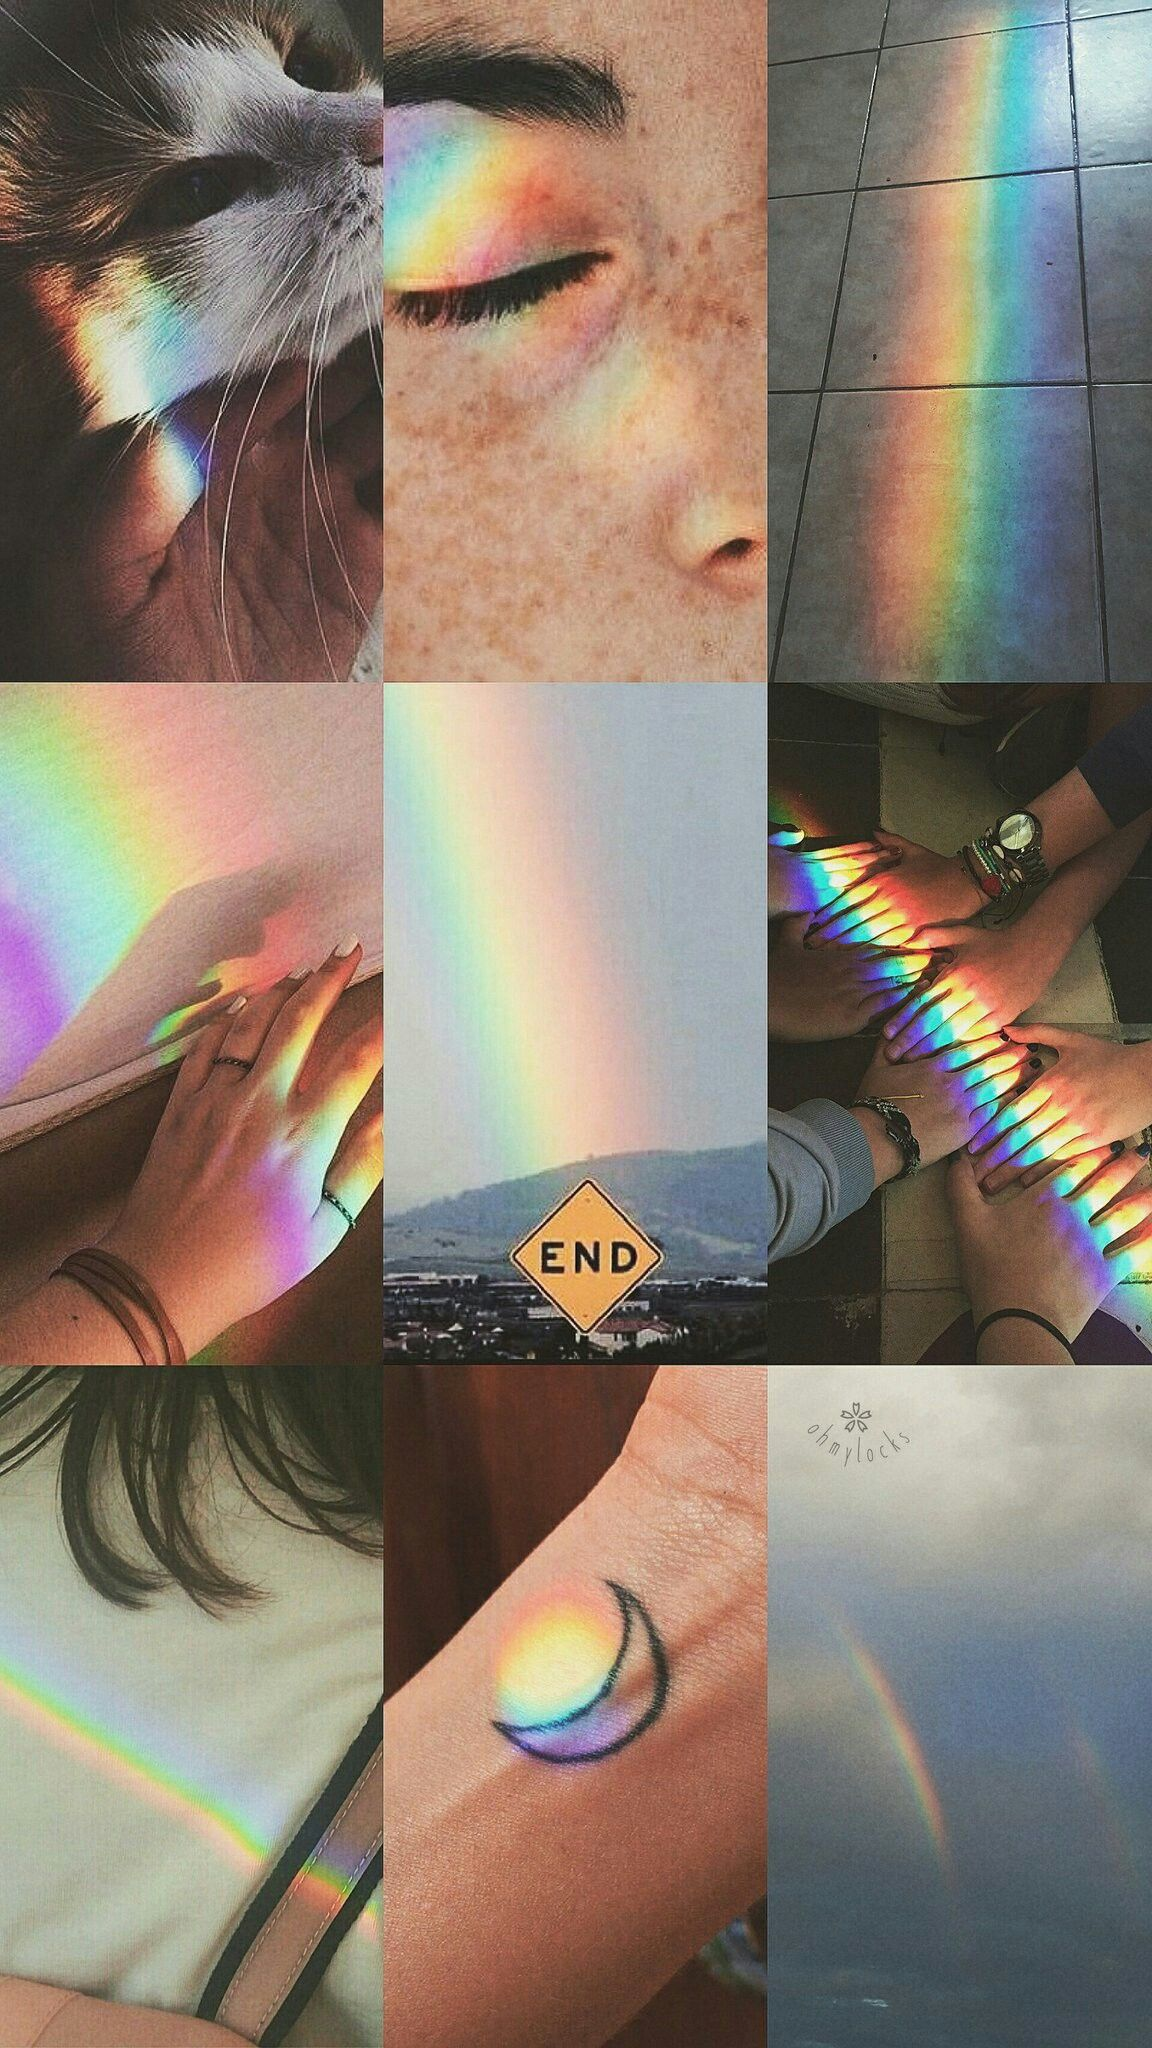 Pin By Aurora Kaunang On Wallpapers Aesthetic Collage Iphone Wallpaper Tumblr Aesthetic Rainbow Wallpaper